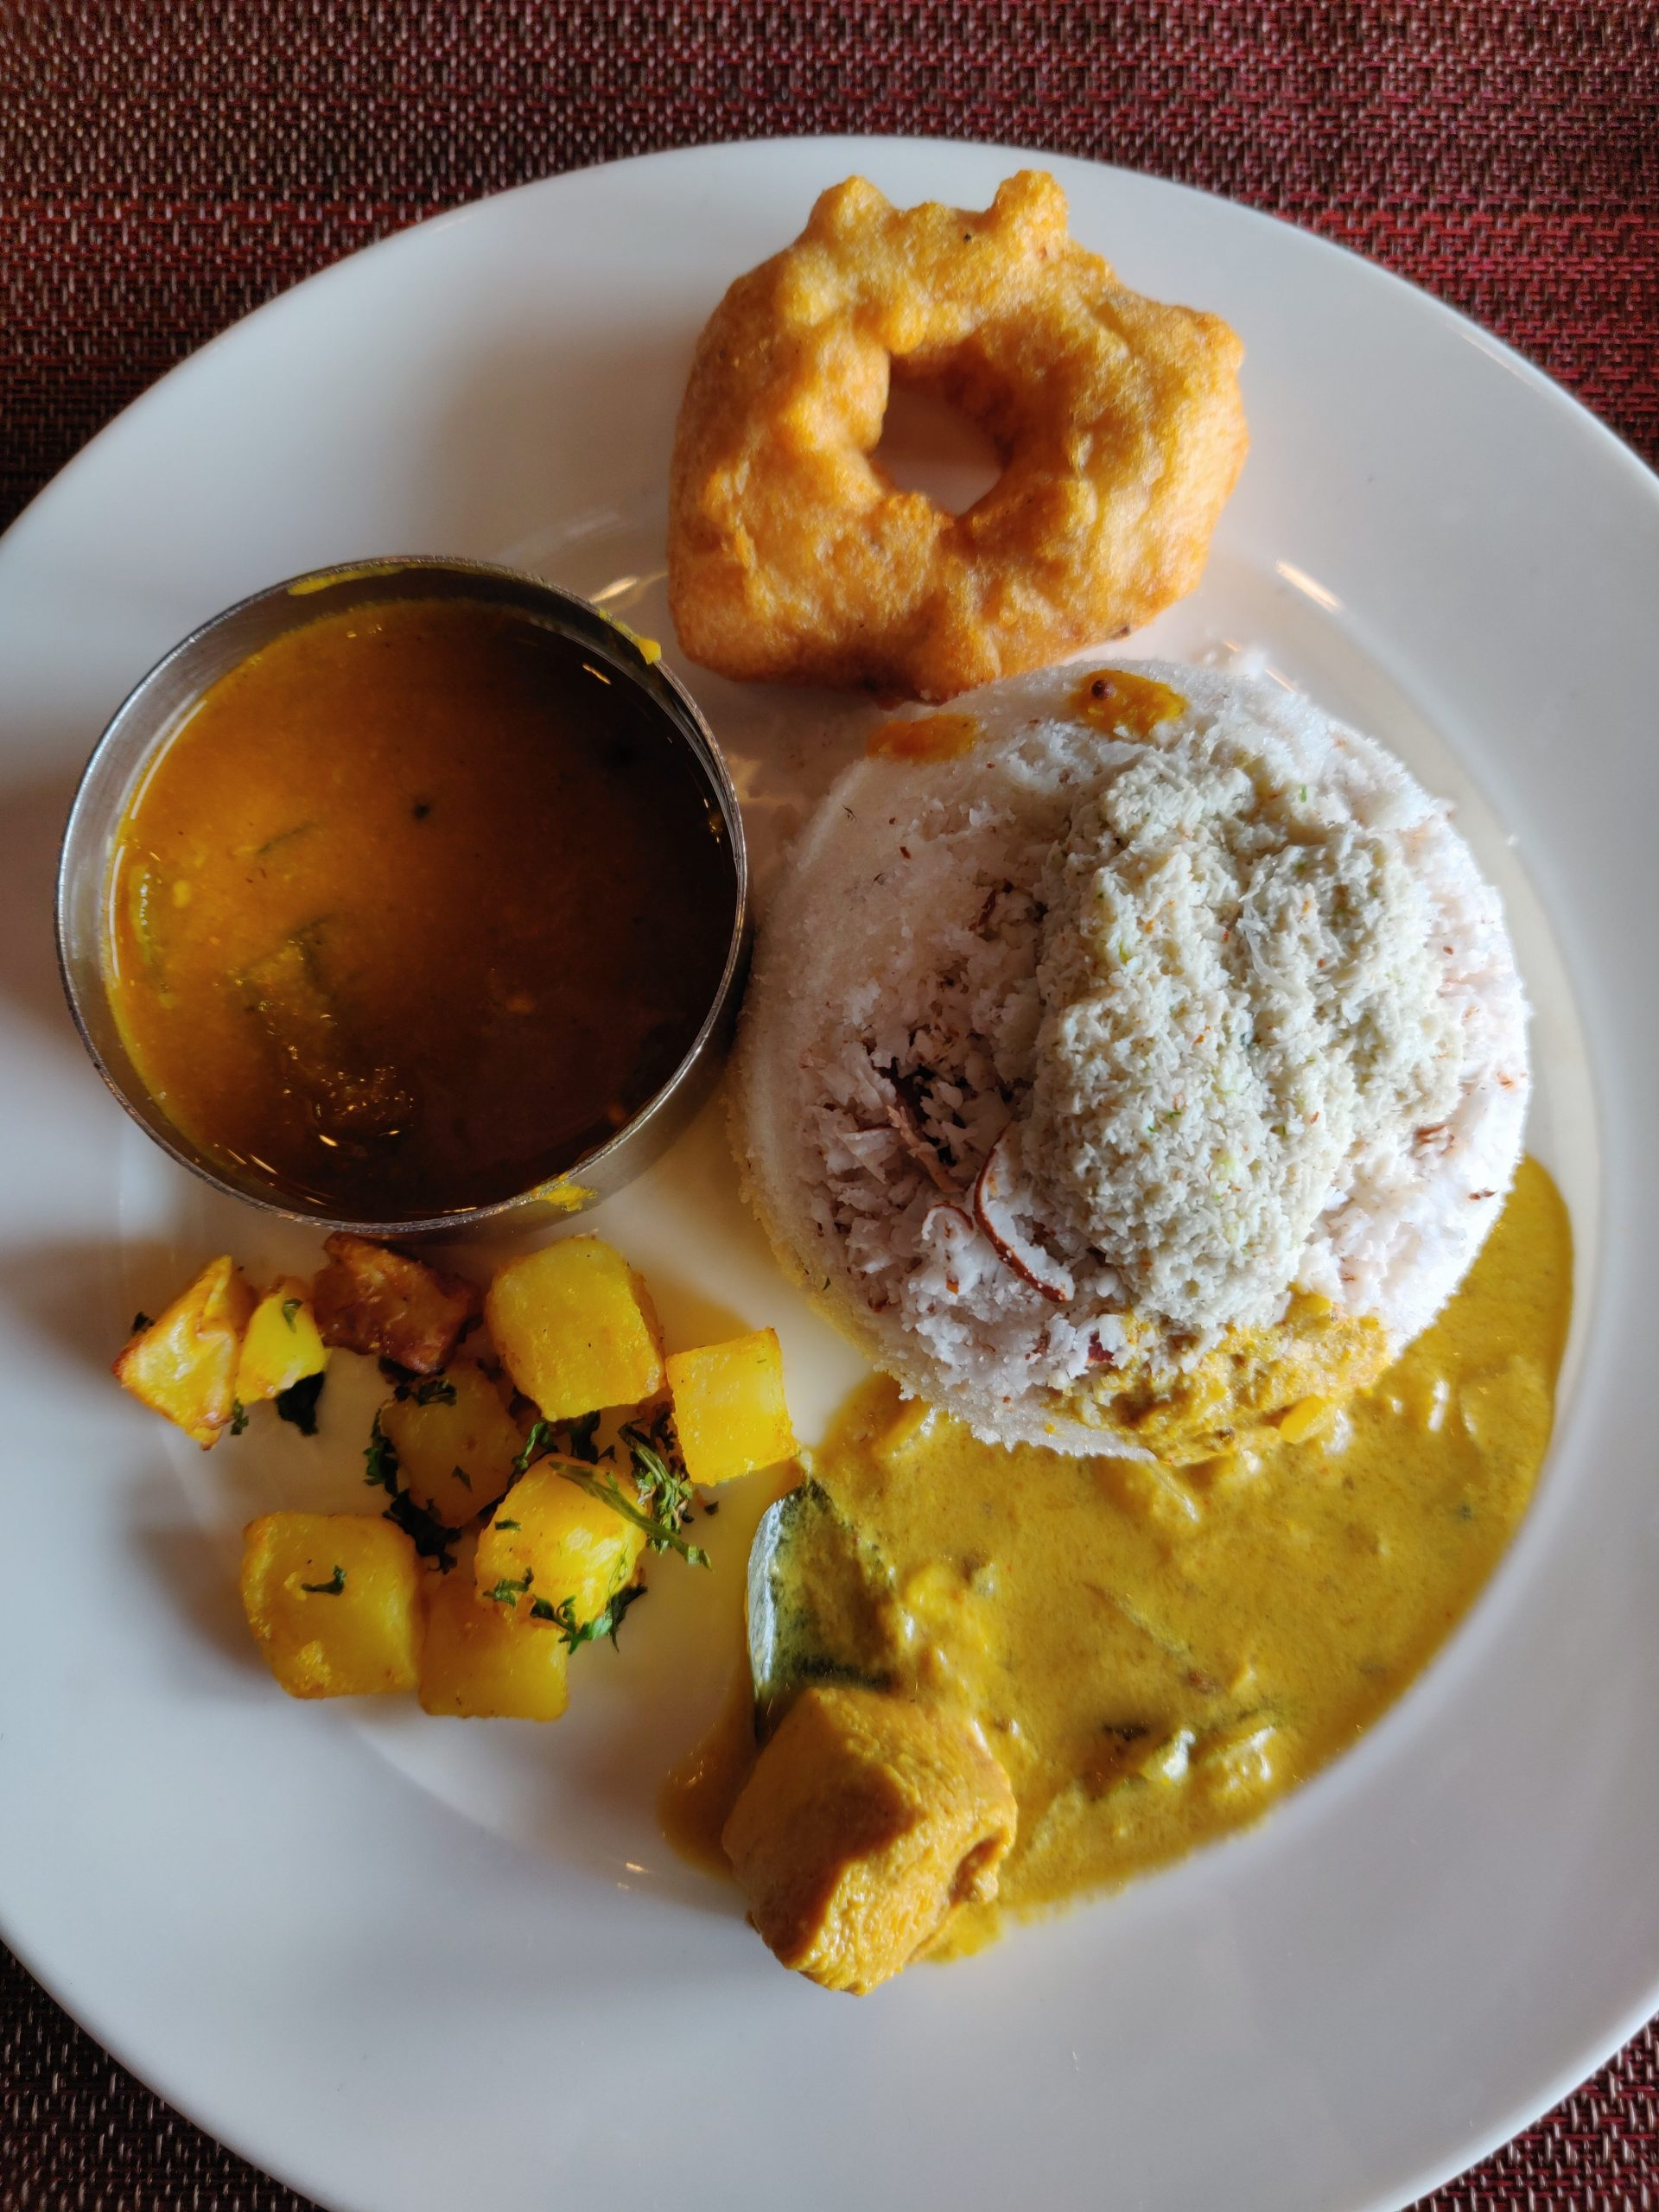 Binge on the delicious Malabari cuisine